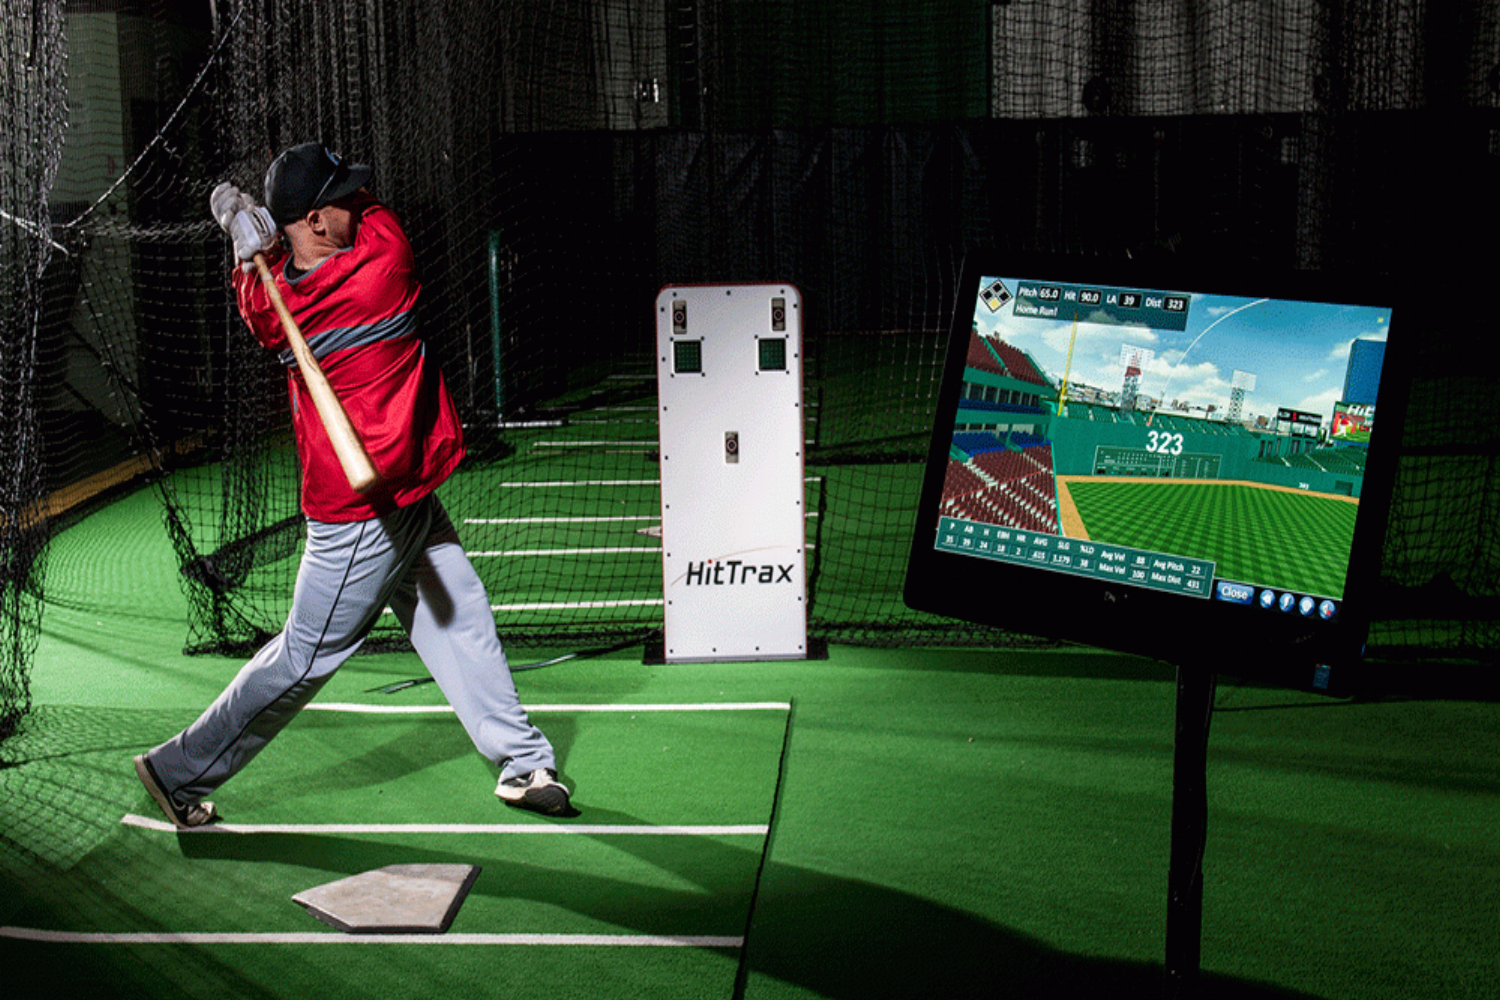 Hitting - Approach & Mental PrepPitch RecognitionExit Velocity & Launch AngleStrength Training+